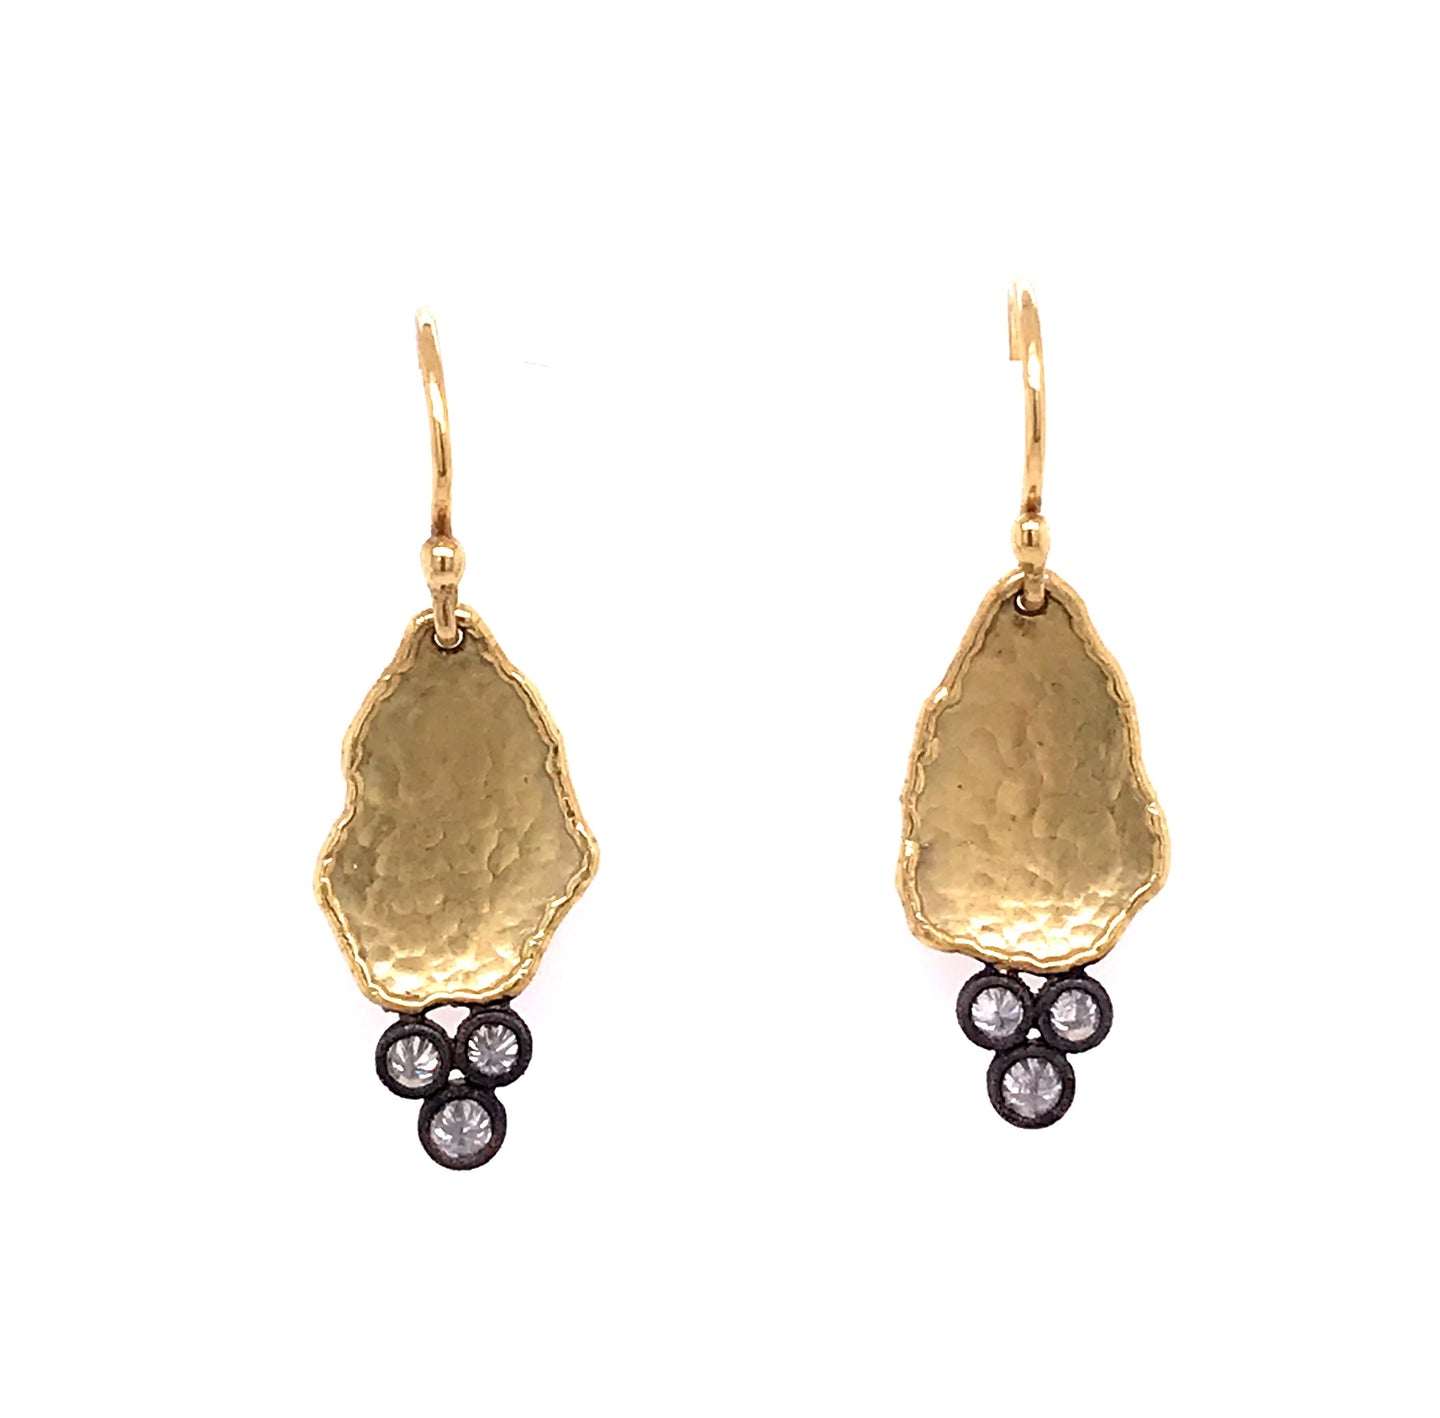 Hammered Gold Tear Drop Diamond Earrings